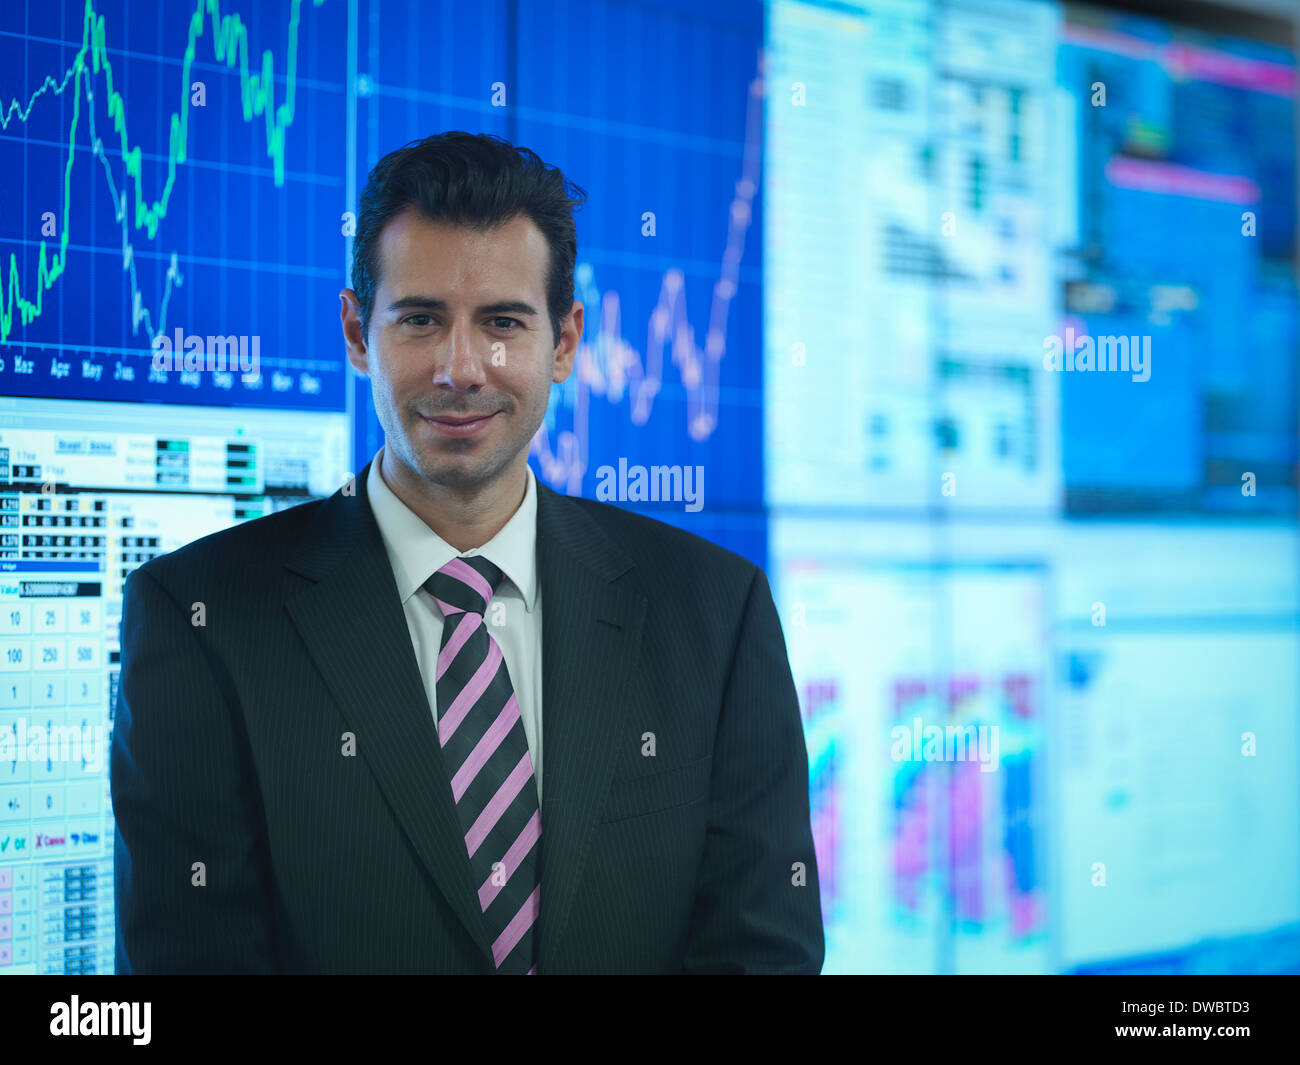 Portrait of businessman in front of presentation on graphical screens - Stock Image